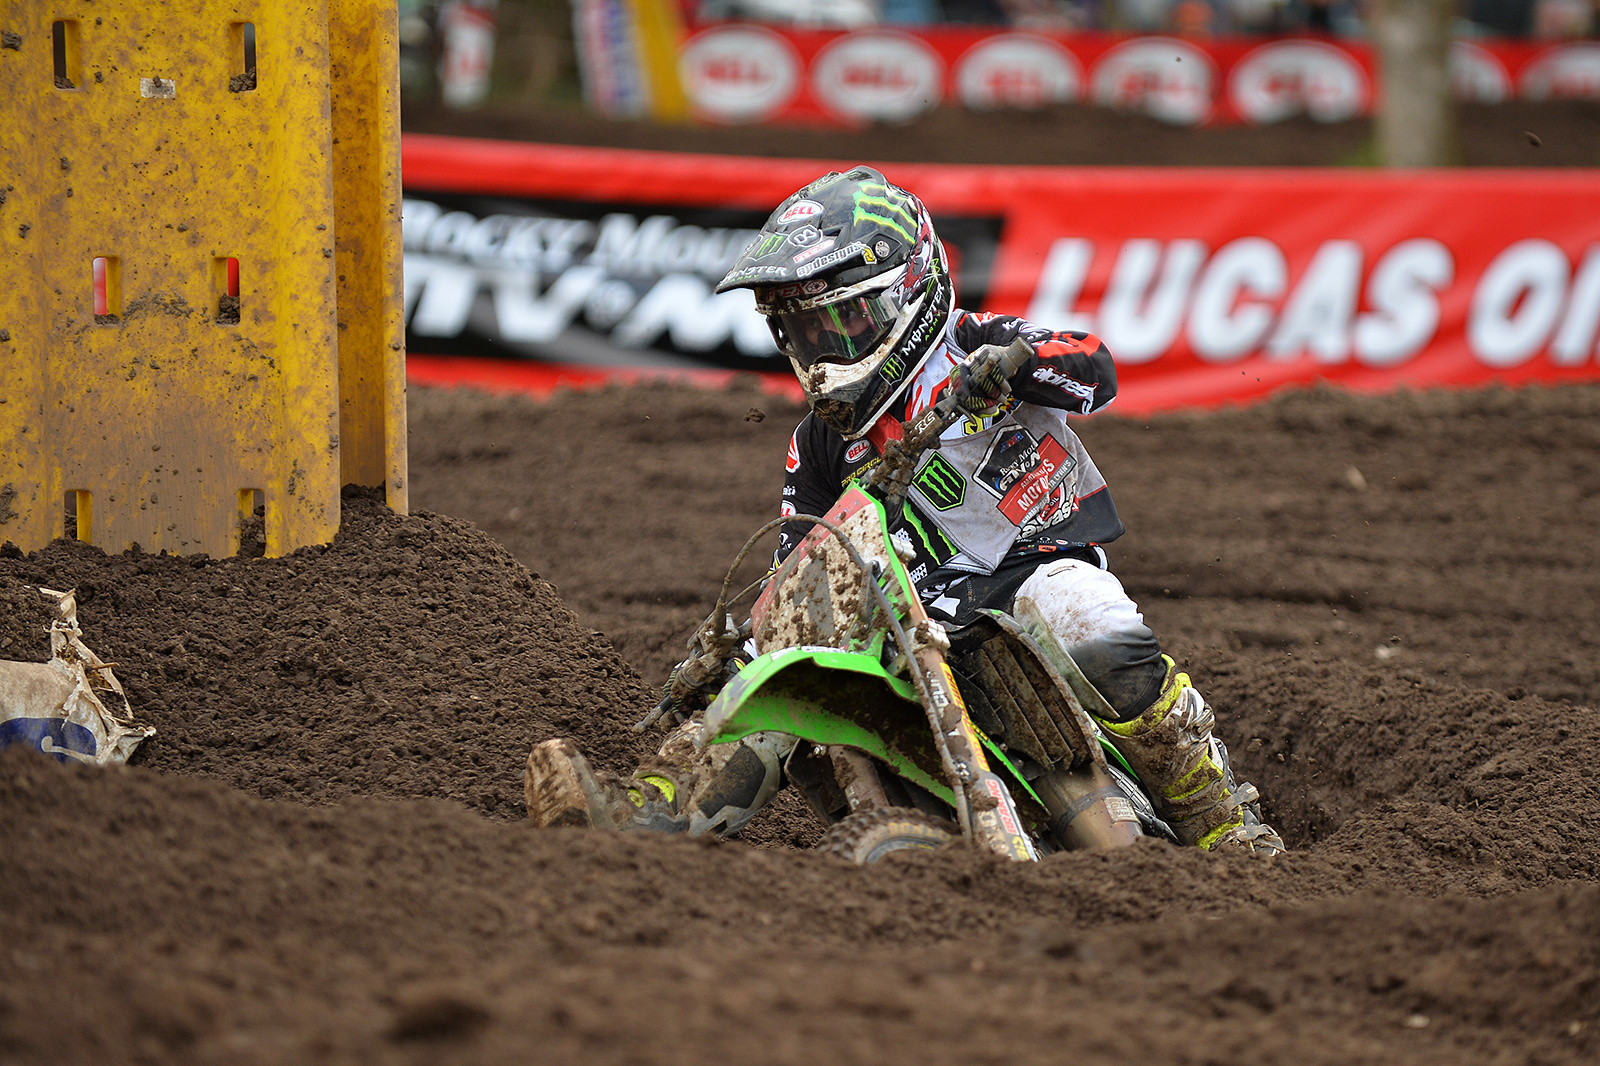 After crashing and suffering a mechanical issue, Kawasaki Team Green's Jett Reynolds was able to locked down the 85 (9-12) class championship—his ninth consecutive Loretta Lynn's title.